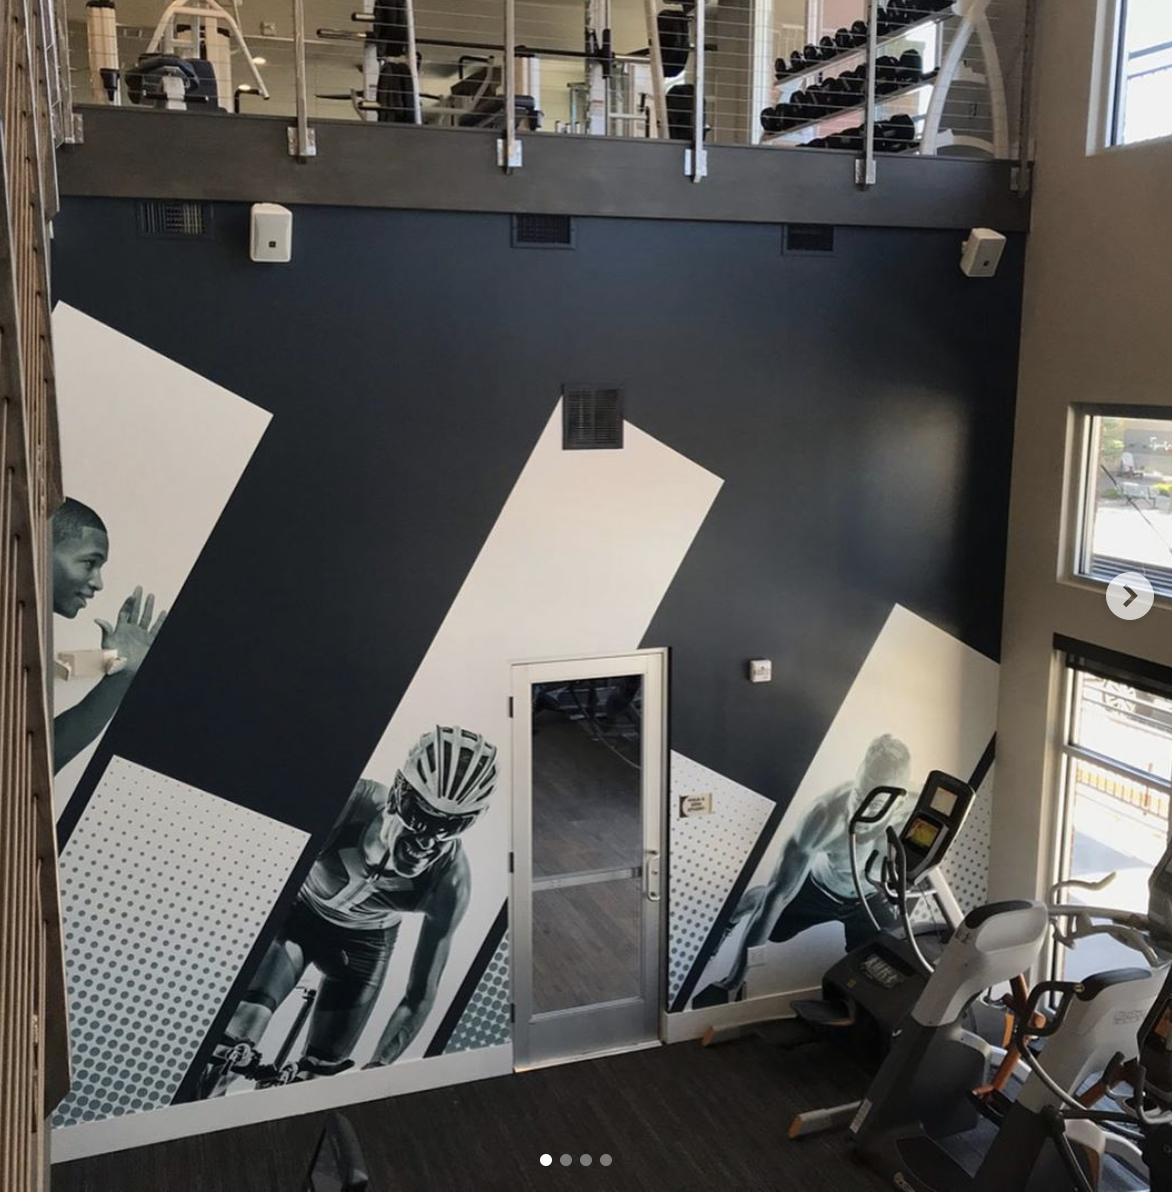 Large fitness center wall graphic